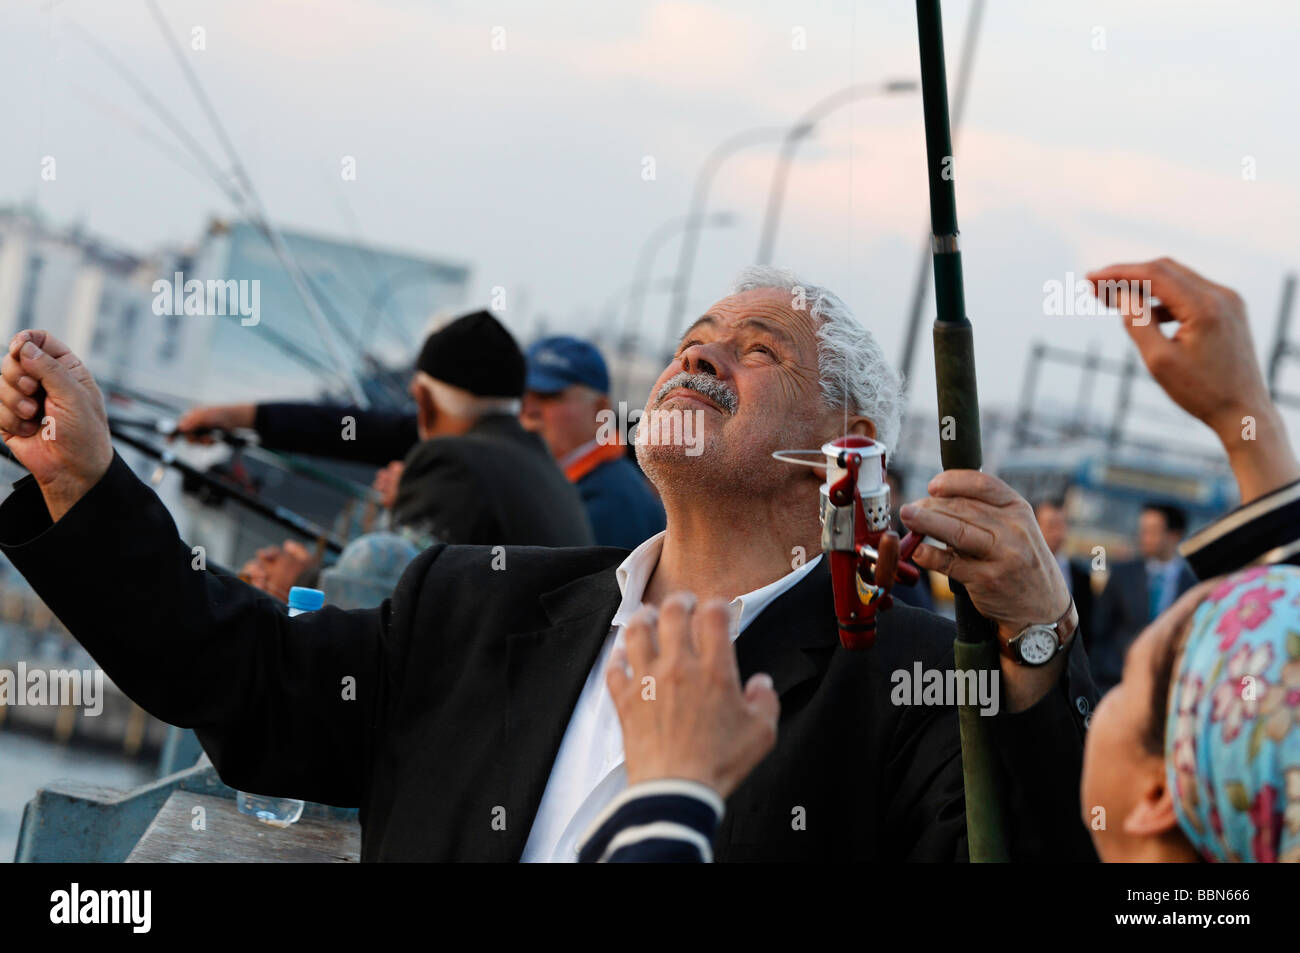 White haired Turkish angler examines his catch, Galata Bridge, Eminoenue, Istanbul, Turkey - Stock Image